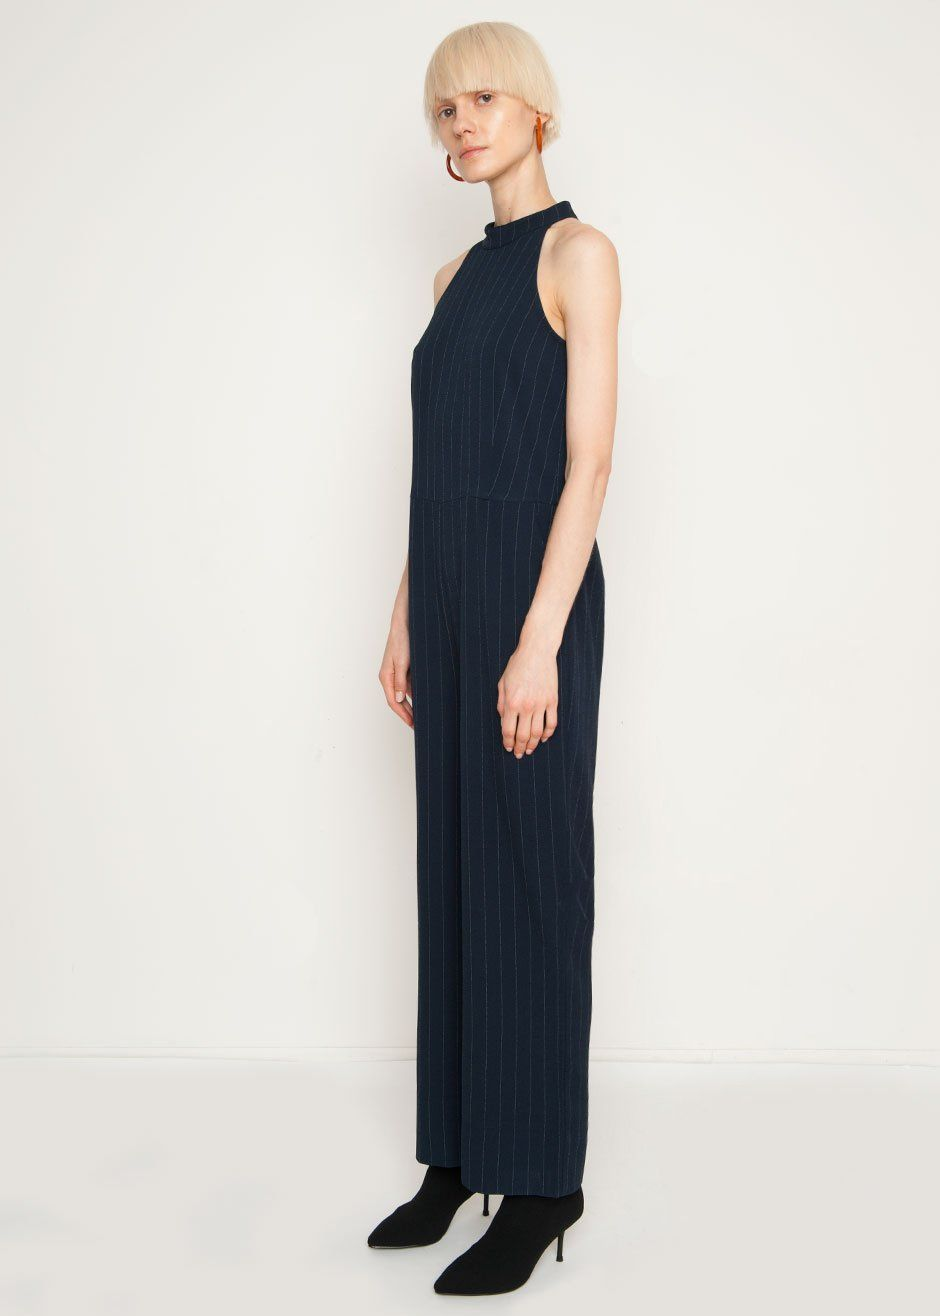 09c634a6ea6f Navy Pinstriped Sleeveless Jumpsuit w Halter Neck   Wide Legs. 2 Side  Pockets